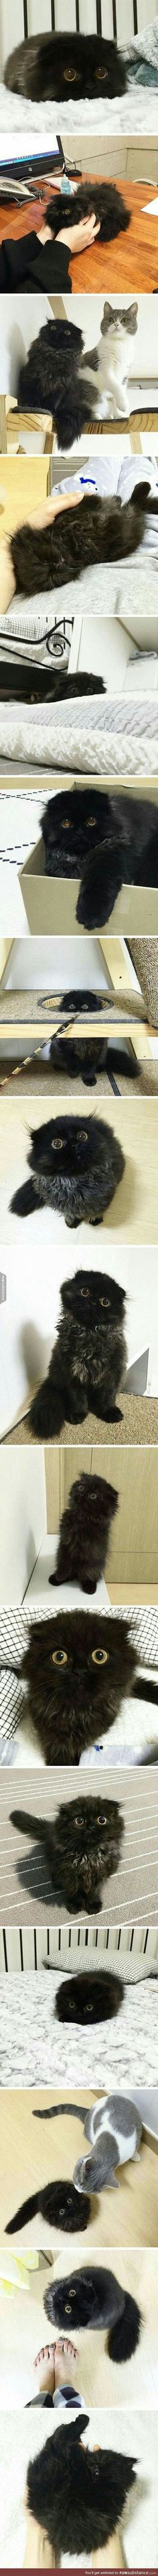 Black kitten with huge eyes